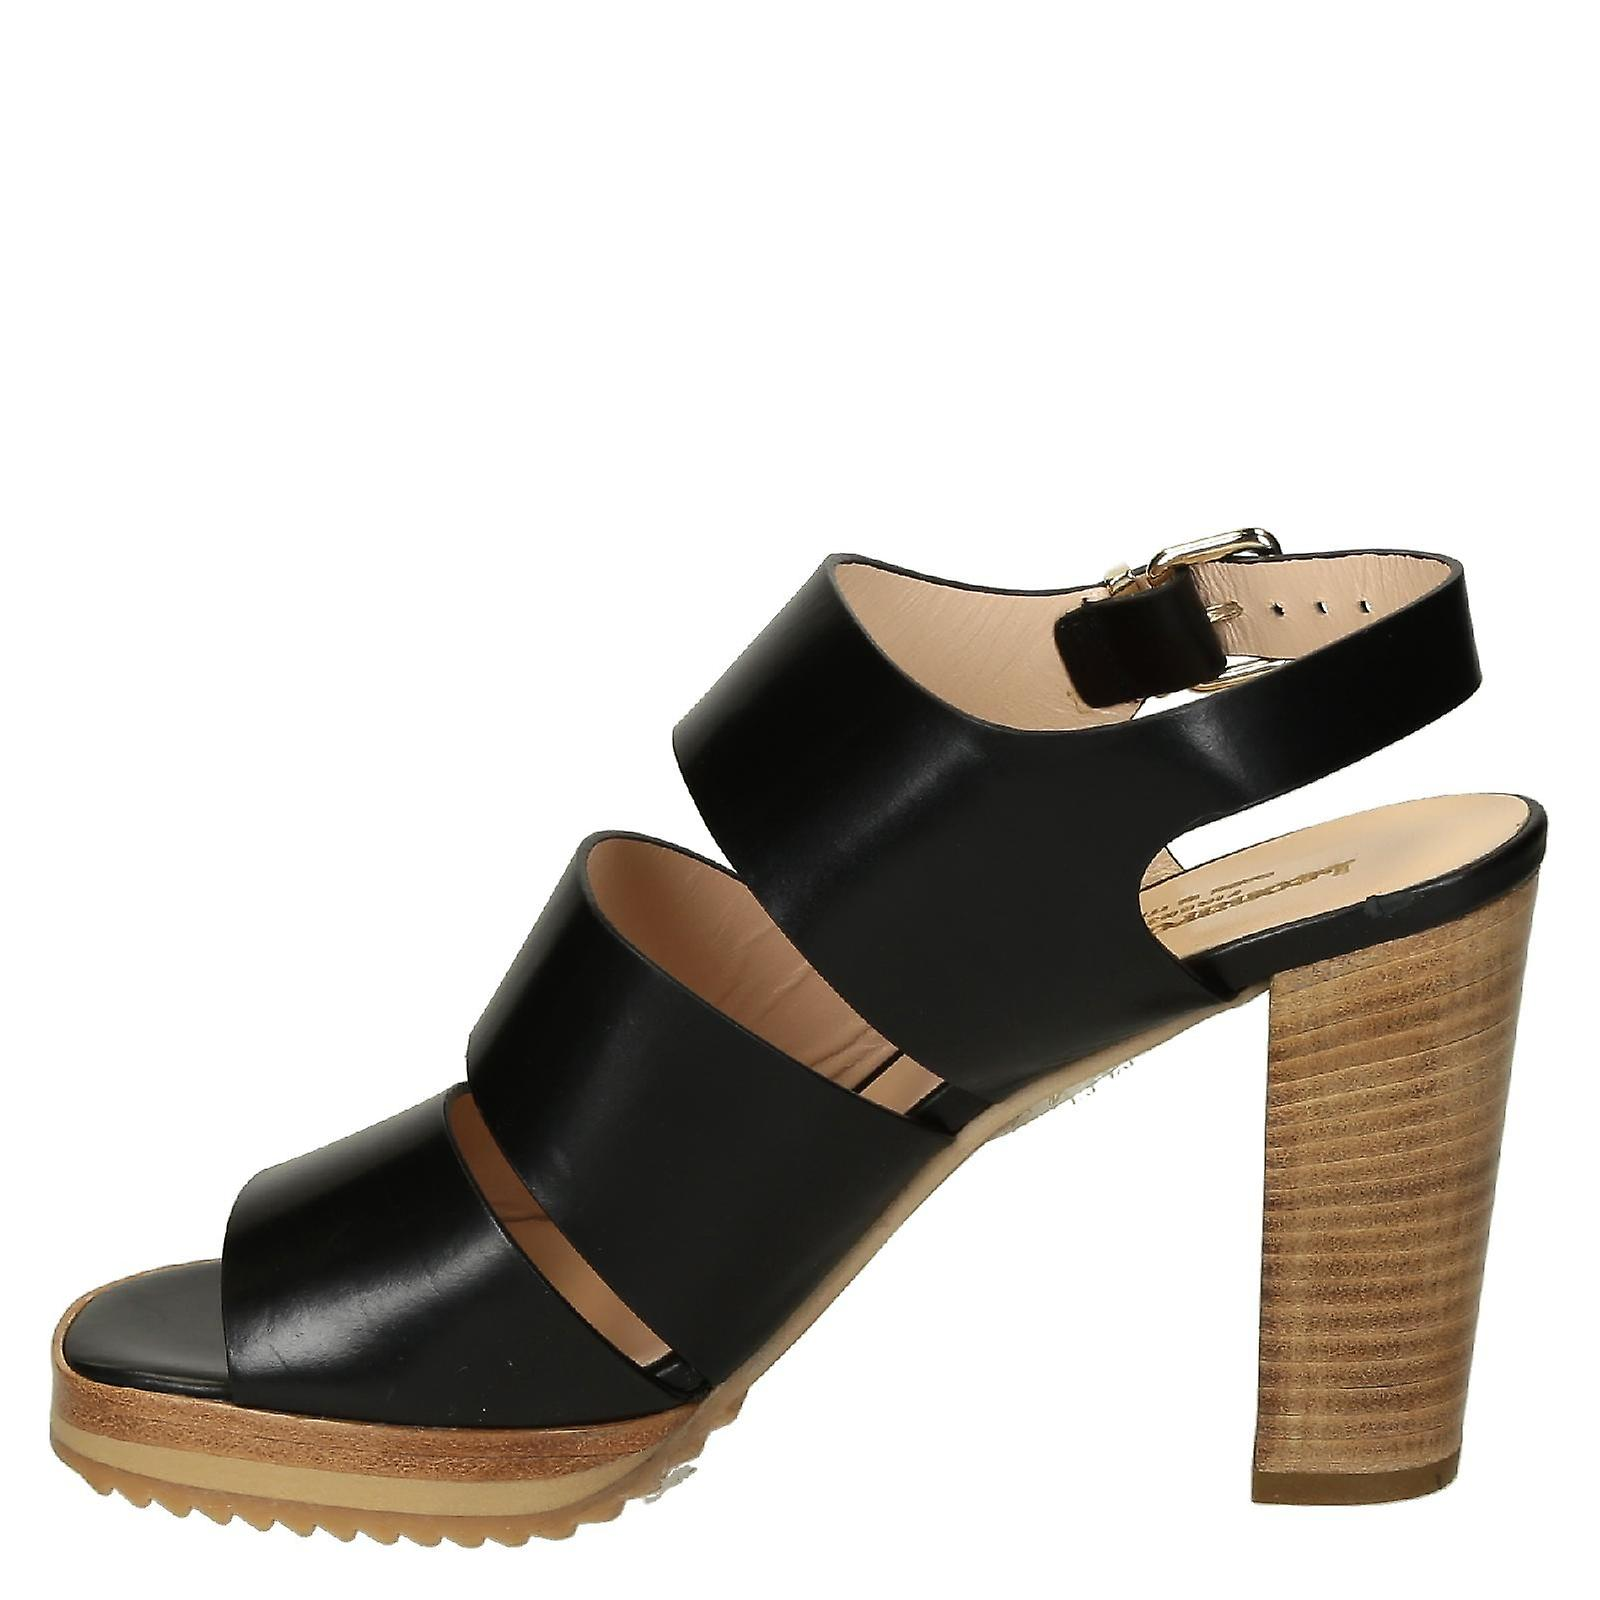 Heeled sandals with platform in black strappy leather